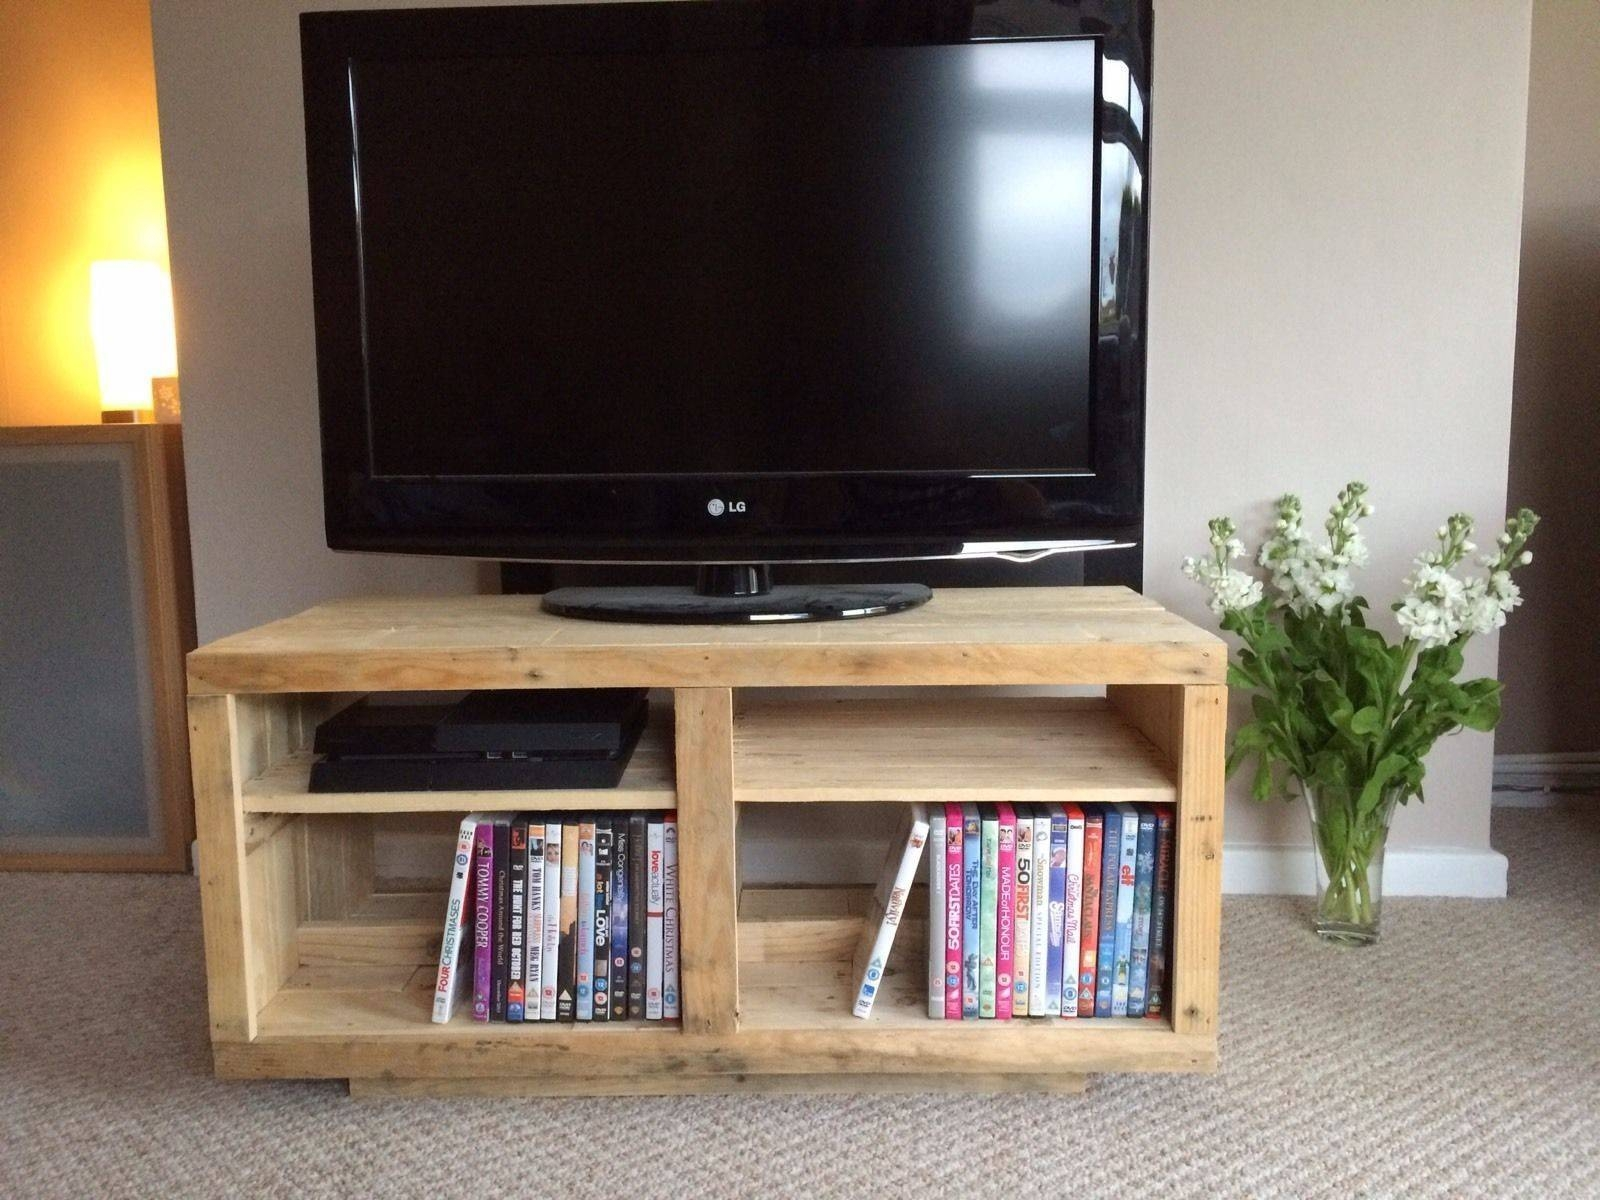 How To Build A Tv Stand Out Of Wood | Ebay pertaining to Upright Tv Stands (Image 5 of 15)